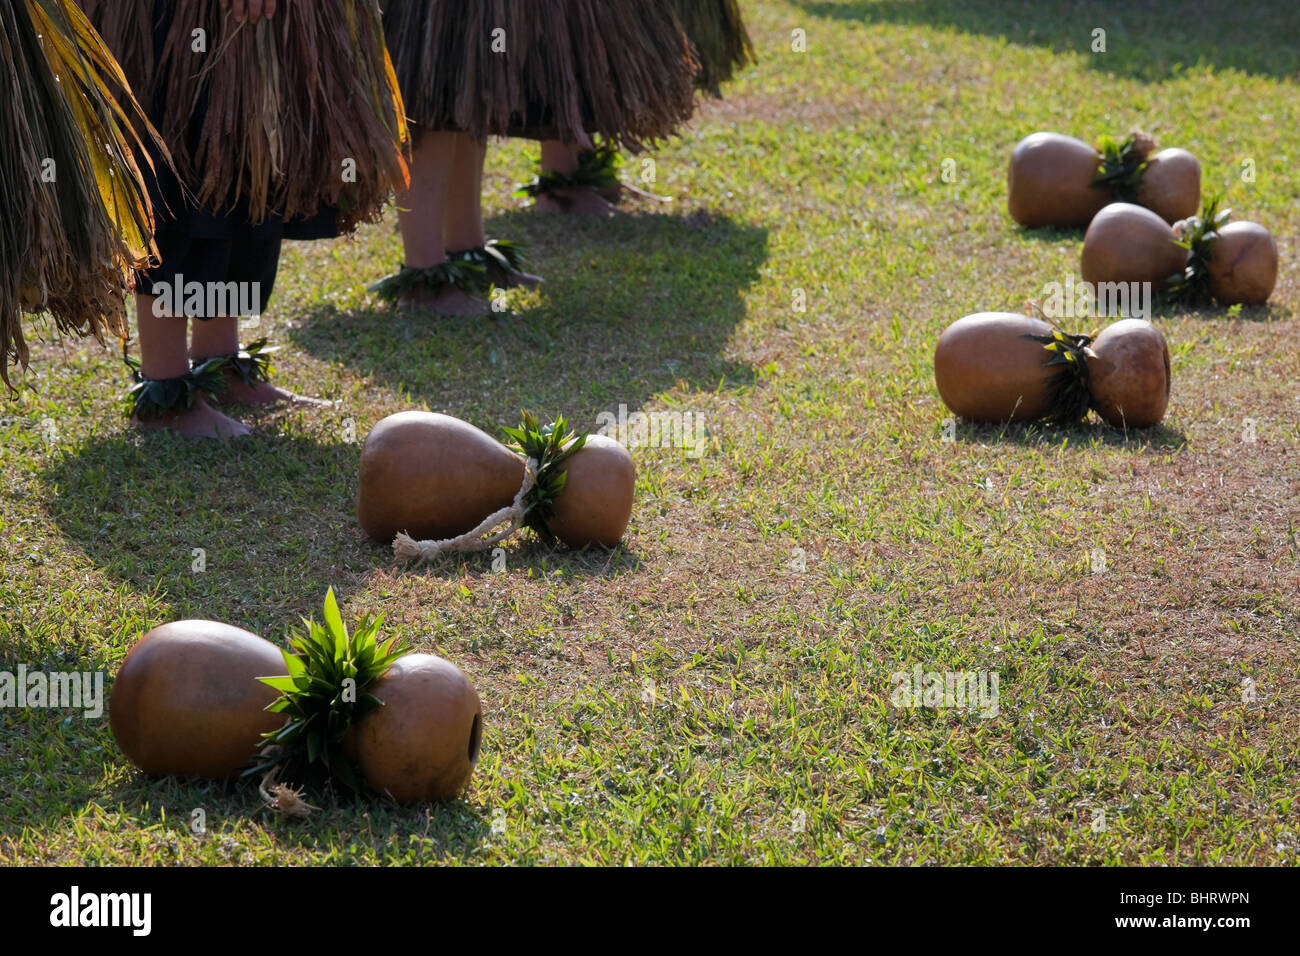 Ti leaf skirted hula dancers in Hawaii with ipu hekes resting in front of them before performance. - Stock Image